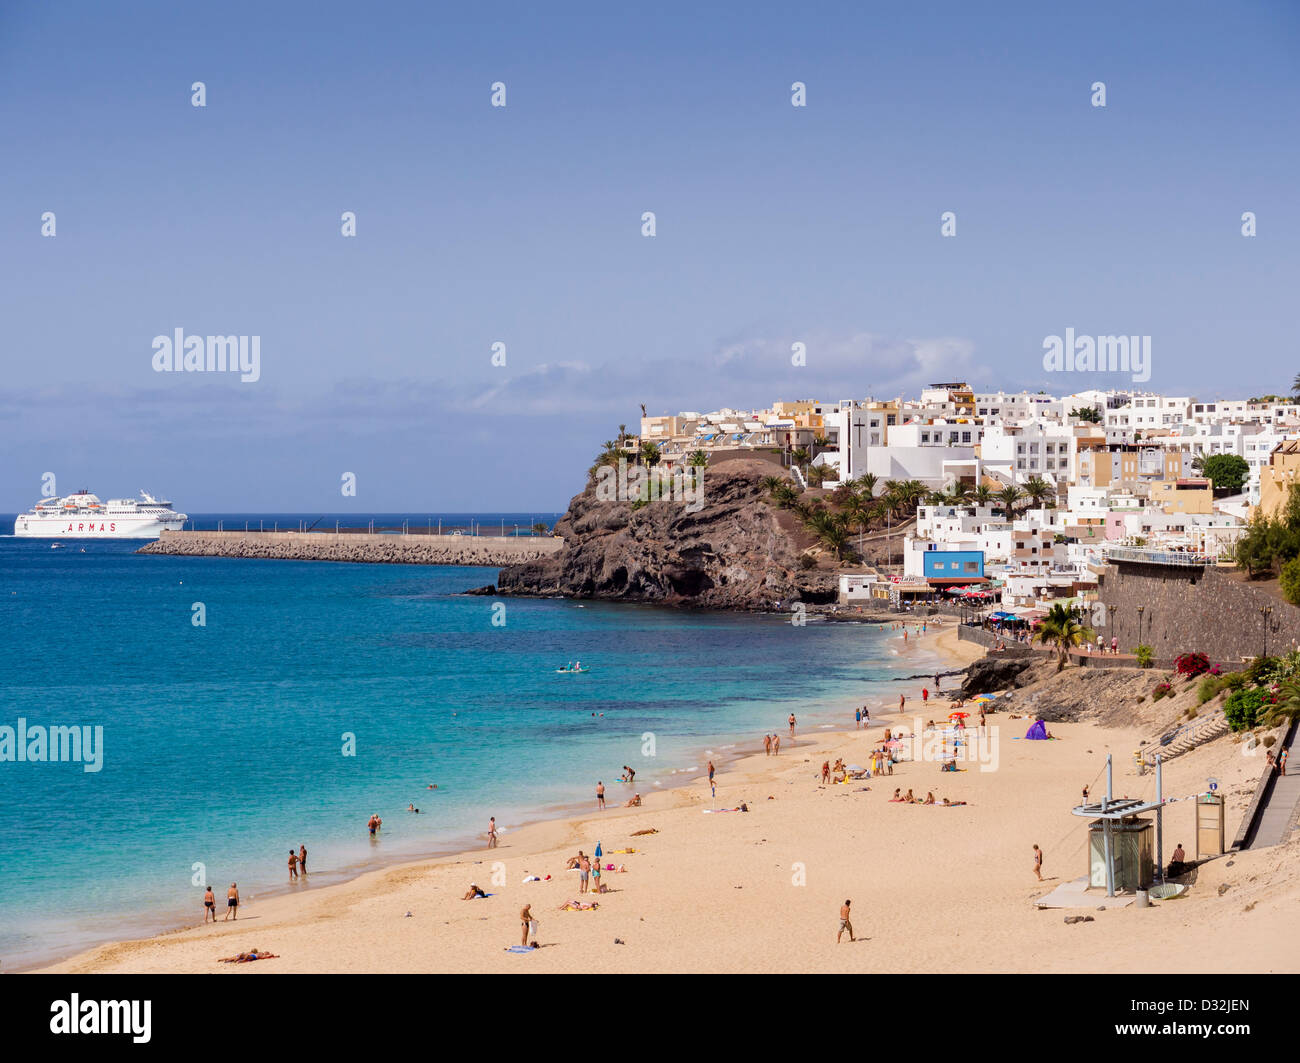 A ferry boat arrives at the port of Morro Jable, Fuerteventura, Canary Islands. - Stock Image